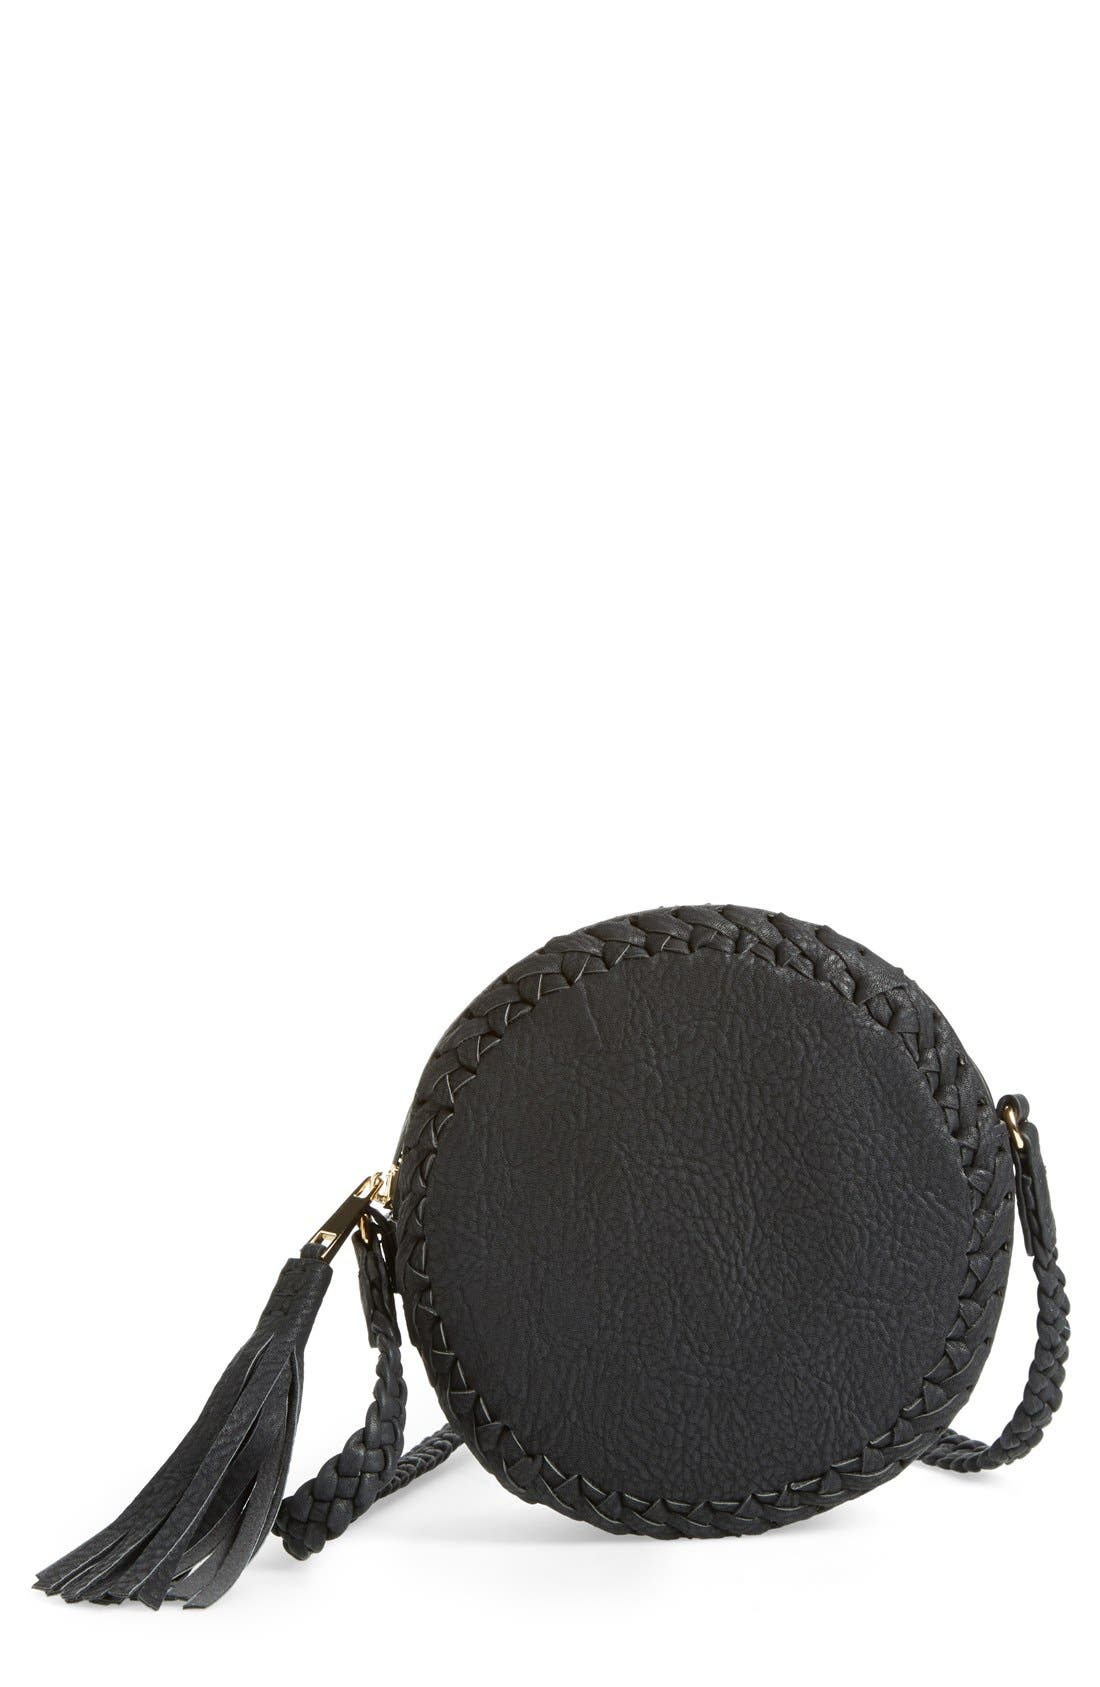 Faux Leather Round Crossbody Bag,                             Main thumbnail 1, color,                             001